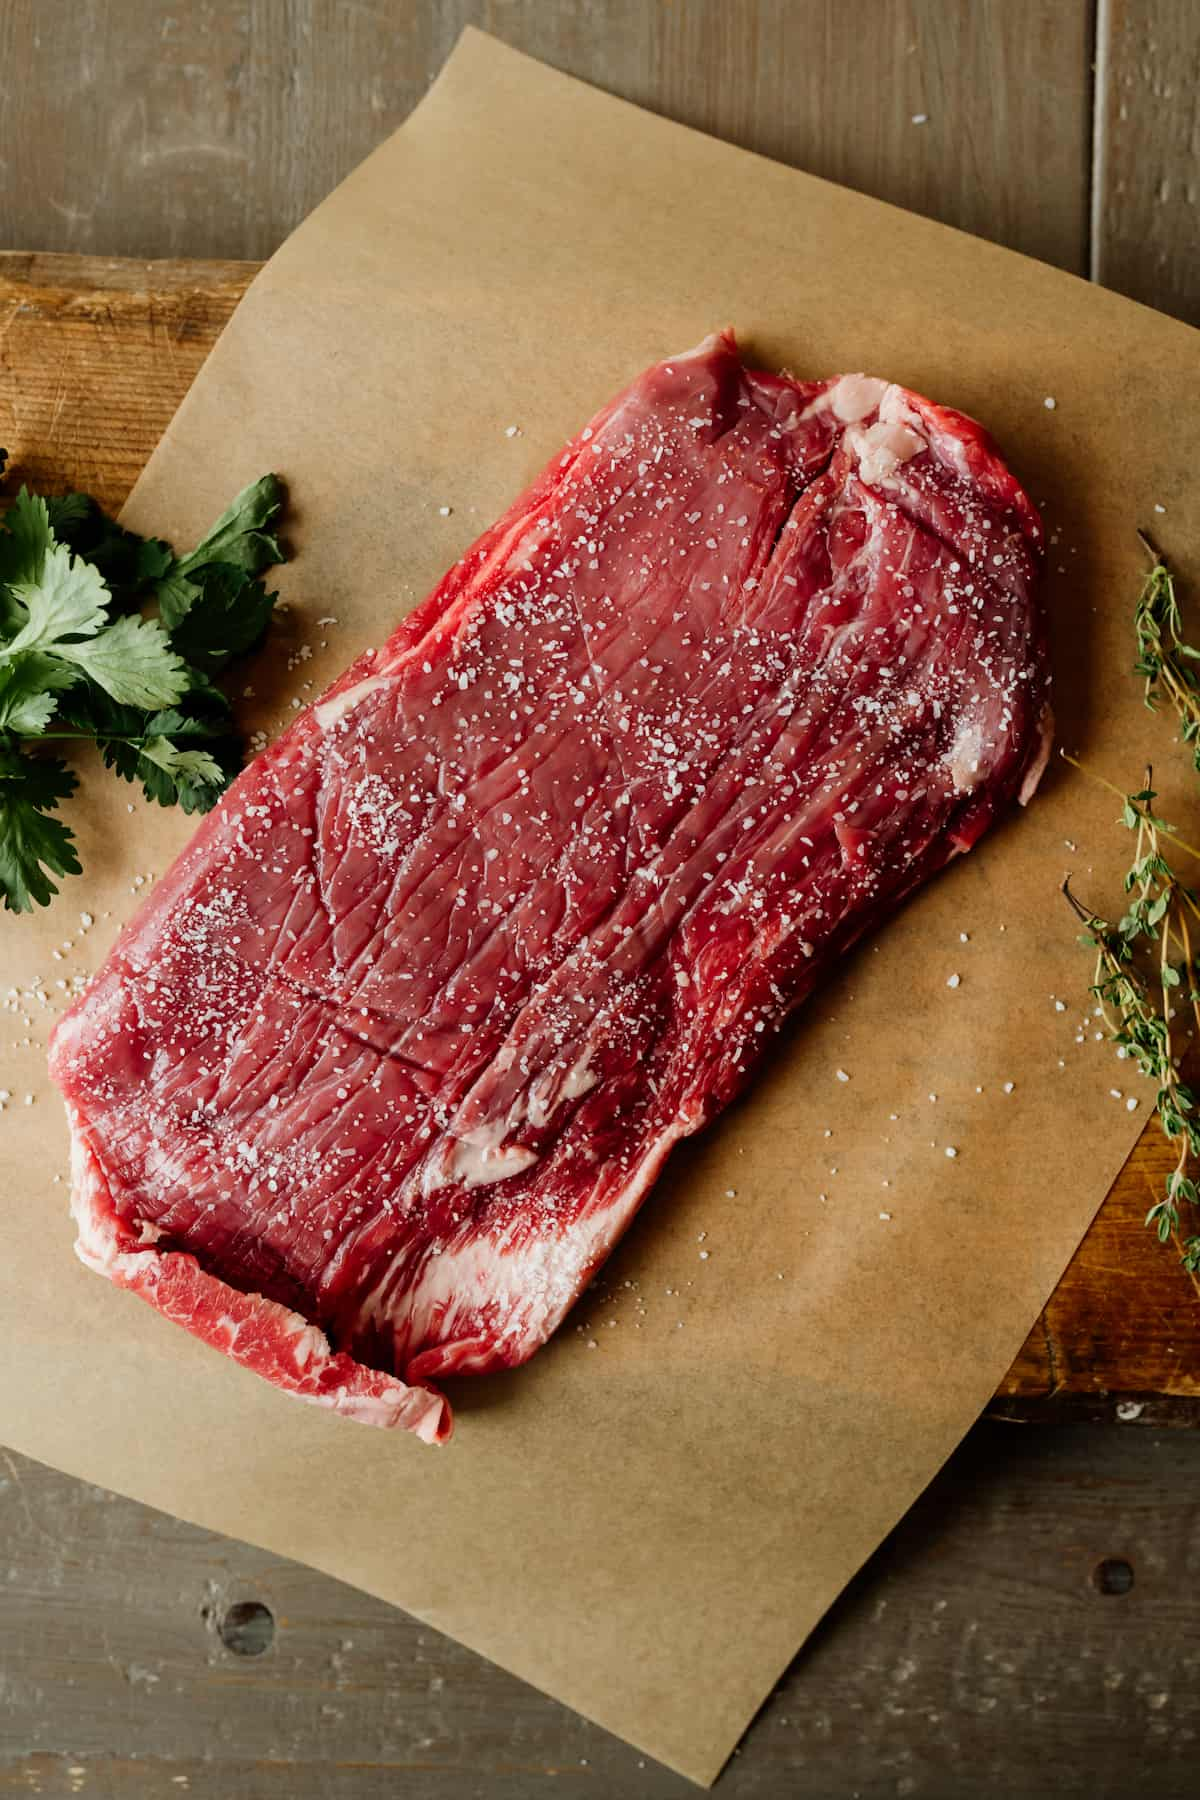 raw skirt steak on a piece of parchment and lightly sprinkled with salt